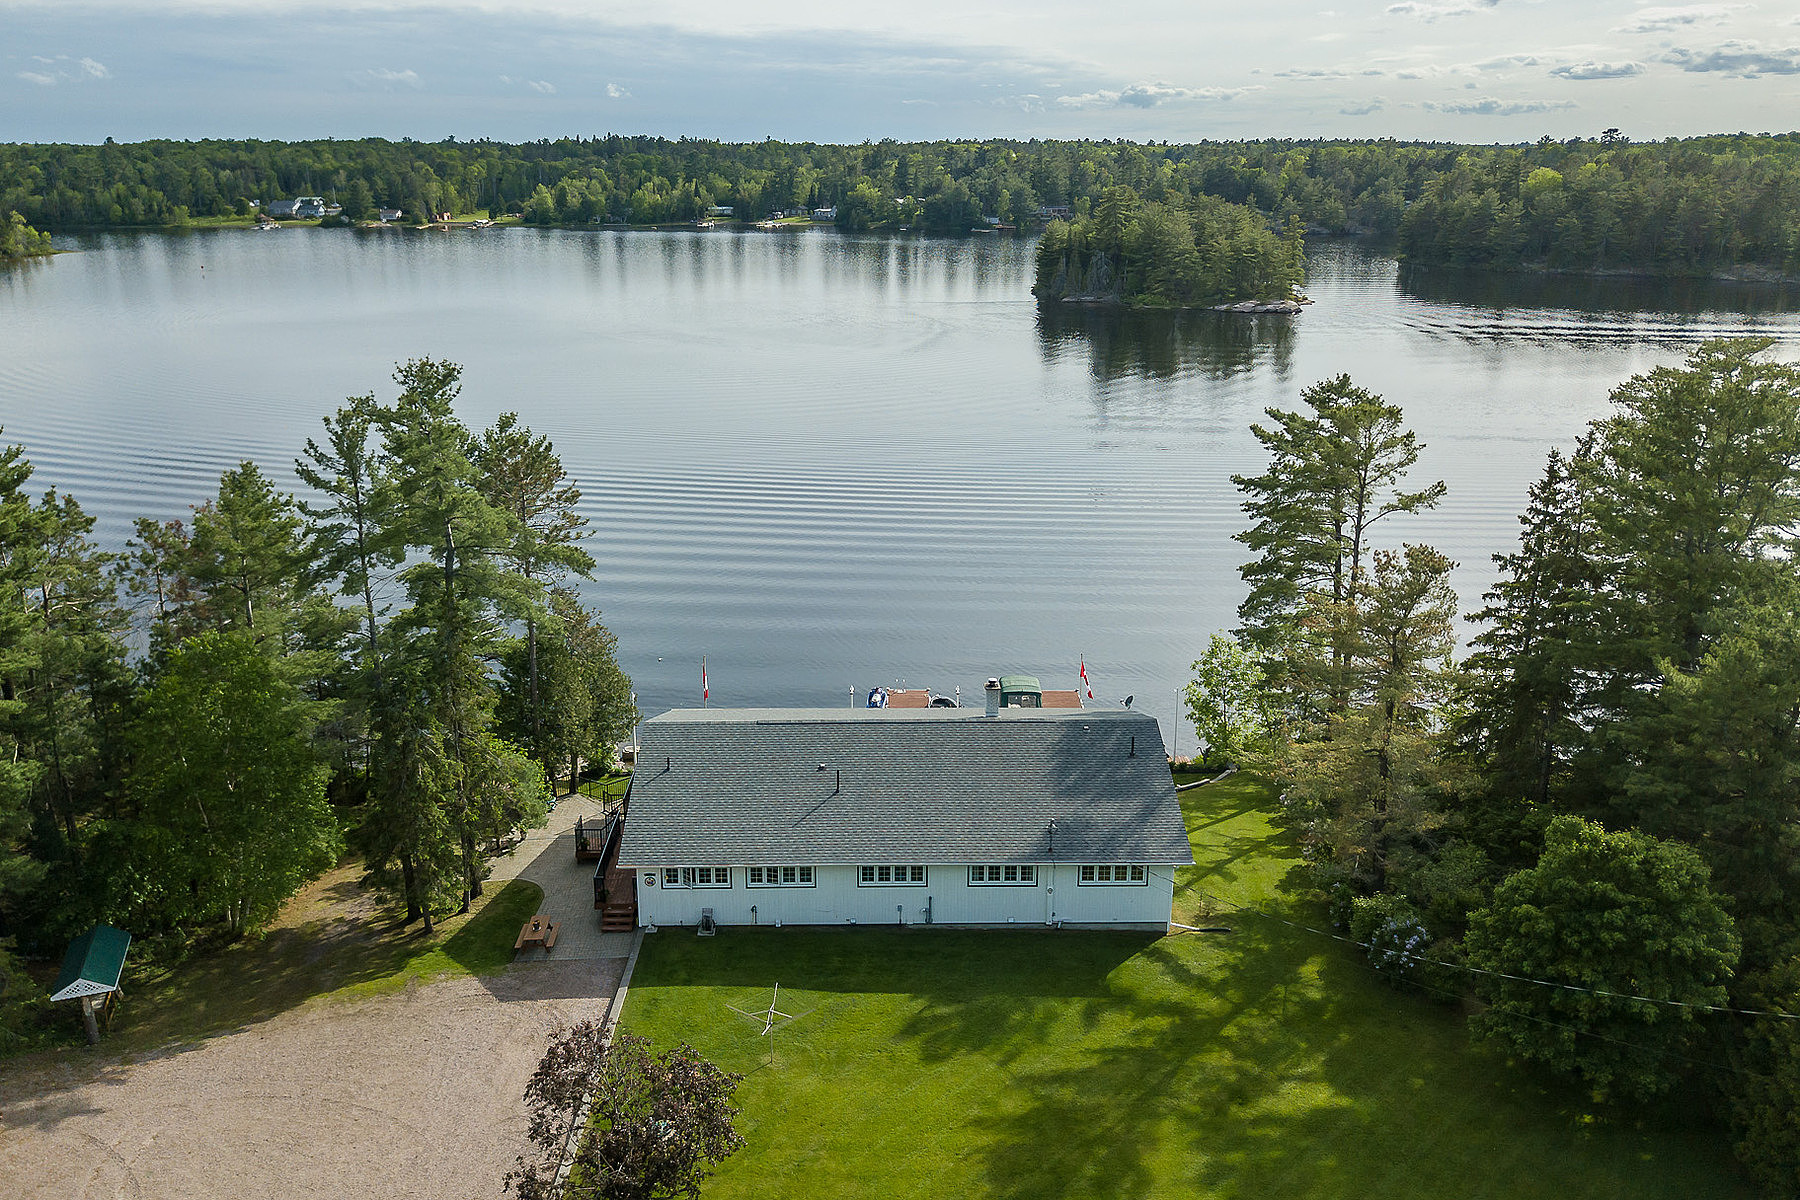 Single Family Home for Sale at 152 Waterfront - Trout Lake 472 Cherriman Rd, Noelville, Ontario, P0M 2N0 Canada